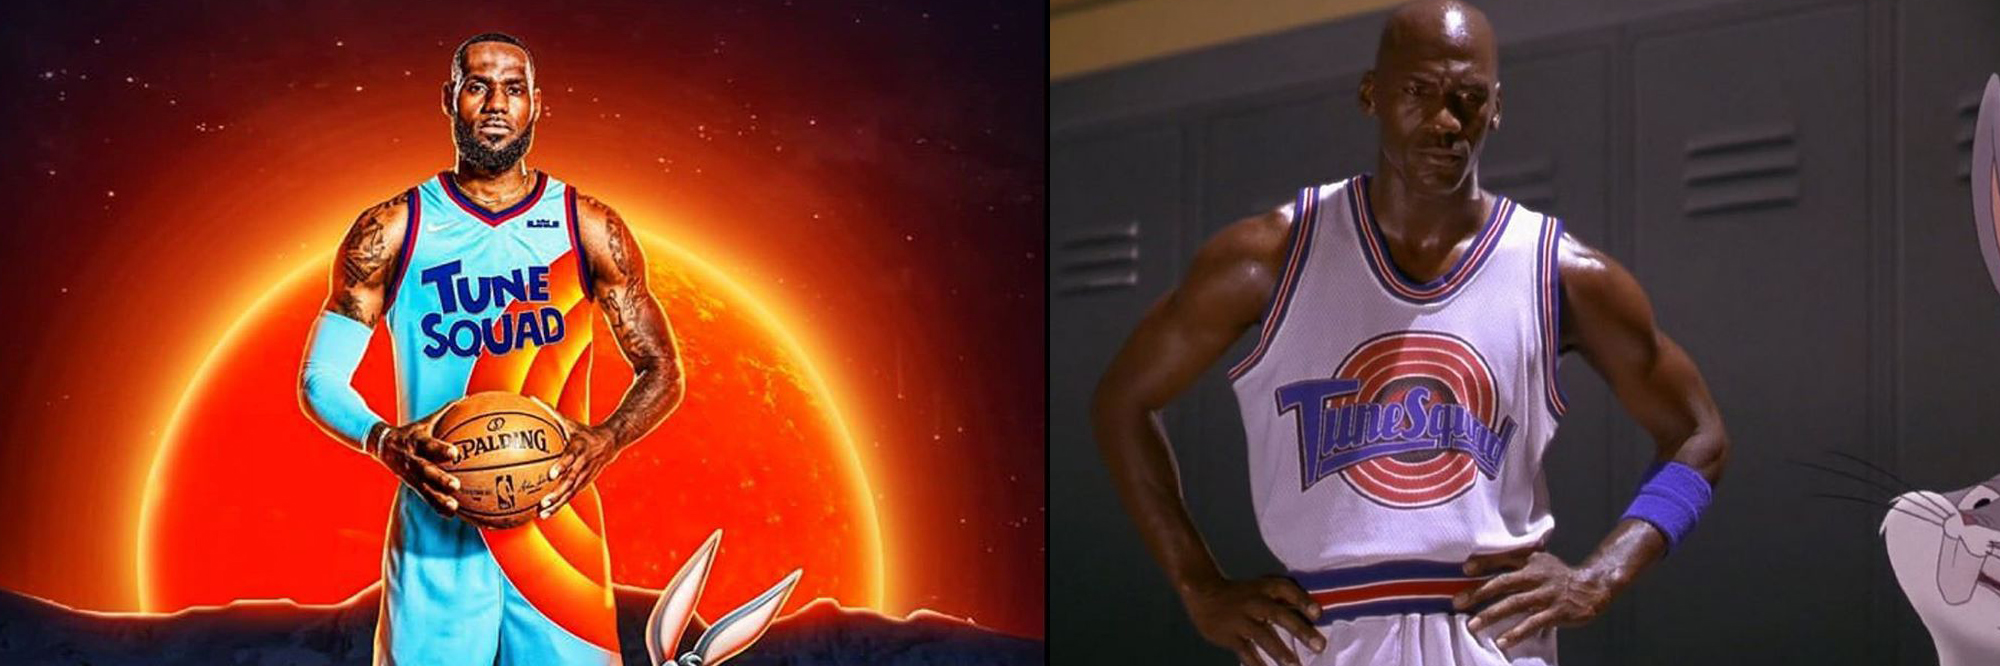 Lebron James (Space Jam 2) & Michael Jordan (Space Jam)